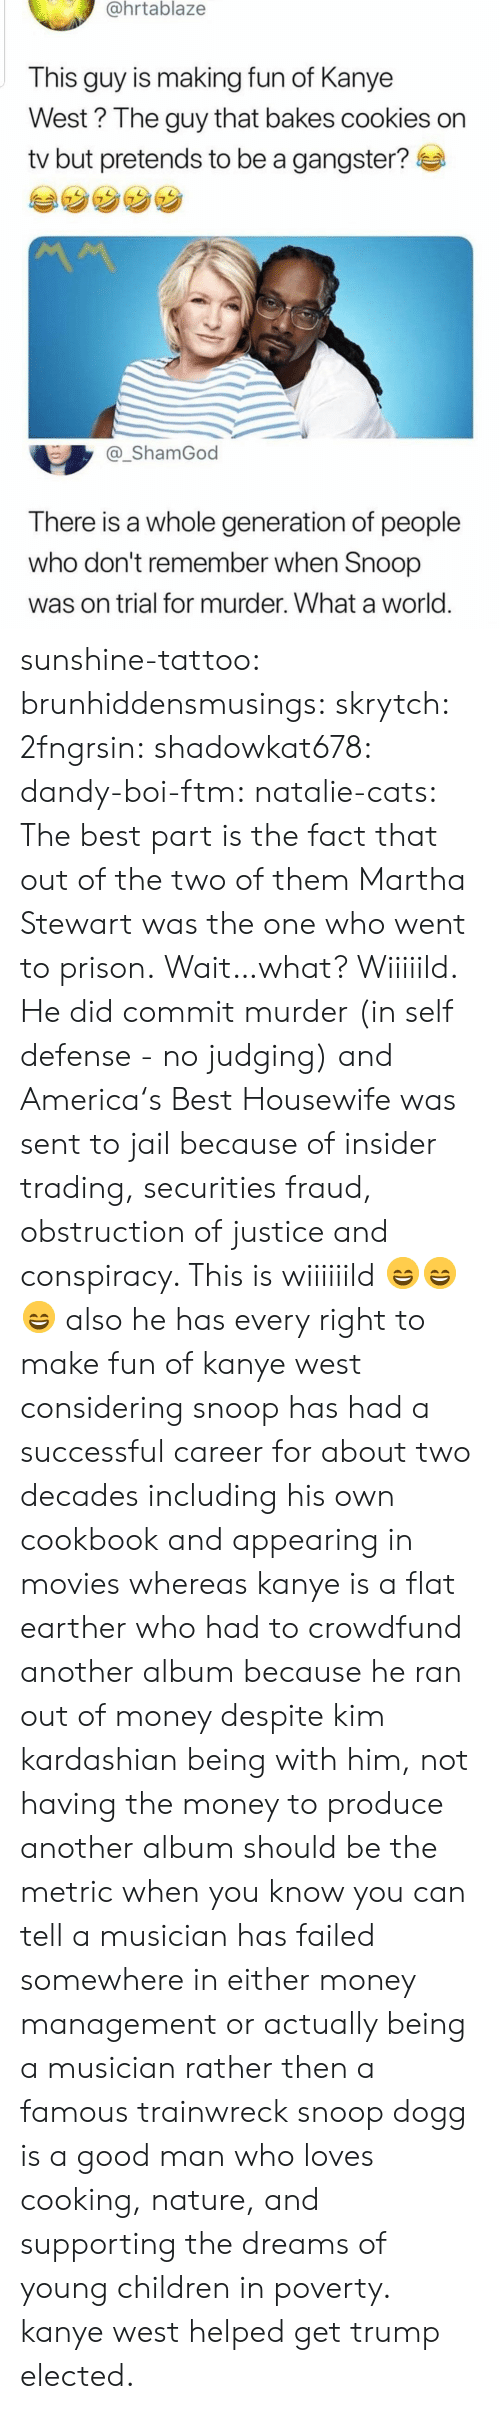 Kim Kardashian: @hrtablaze  This guy is making fun of Kanye  West? The guy that bakes cookies on  tv but pretends to be a gangster?  _ShamGod  There is a whole generation of people  who don't remember when Snoop  was on trial for murder. What a world sunshine-tattoo: brunhiddensmusings:  skrytch:  2fngrsin:  shadowkat678:  dandy-boi-ftm:   natalie-cats:   The best part is the fact that out of the two of them Martha Stewart was the one who went to prison.   Wait…what?   Wiiiiild. He did commit murder (in self defense - no judging) and America's Best Housewife was sent to jail because of insider trading, securities fraud, obstruction of justice and conspiracy. This is wiiiiiild 😄😄😄    also he has every right to make fun of kanye west considering snoop has had a successful career for about two decades including his own cookbook and appearing in movies whereas kanye is a flat earther who had to crowdfund another album because he ran out of money despite kim kardashian being with him, not having the money to produce another album should be the metric when you know you can tell a musician has failed somewhere in either money management or actually being a musician rather then a famous trainwreck   snoop dogg is a good man who loves cooking, nature, and supporting the dreams of young children in poverty. kanye west helped get trump elected.